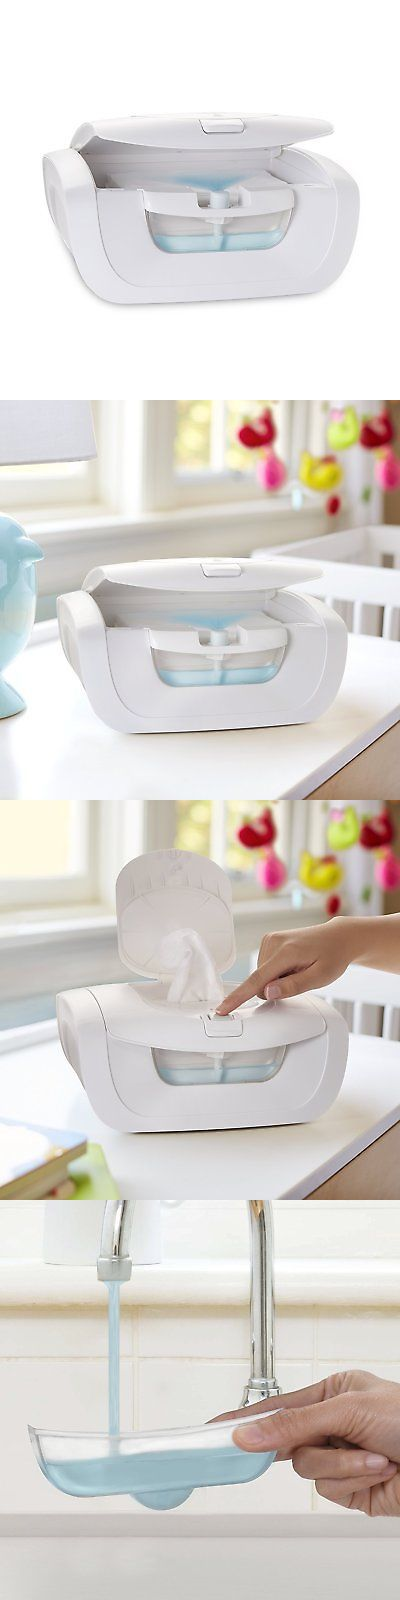 Baby Wipe Warmers 117017: Munchkin Mist Wipe Warmer Baby Comfort Holds 100 Fresh Wipes New Free Shipping -> BUY IT NOW ONLY: $37.51 on eBay!